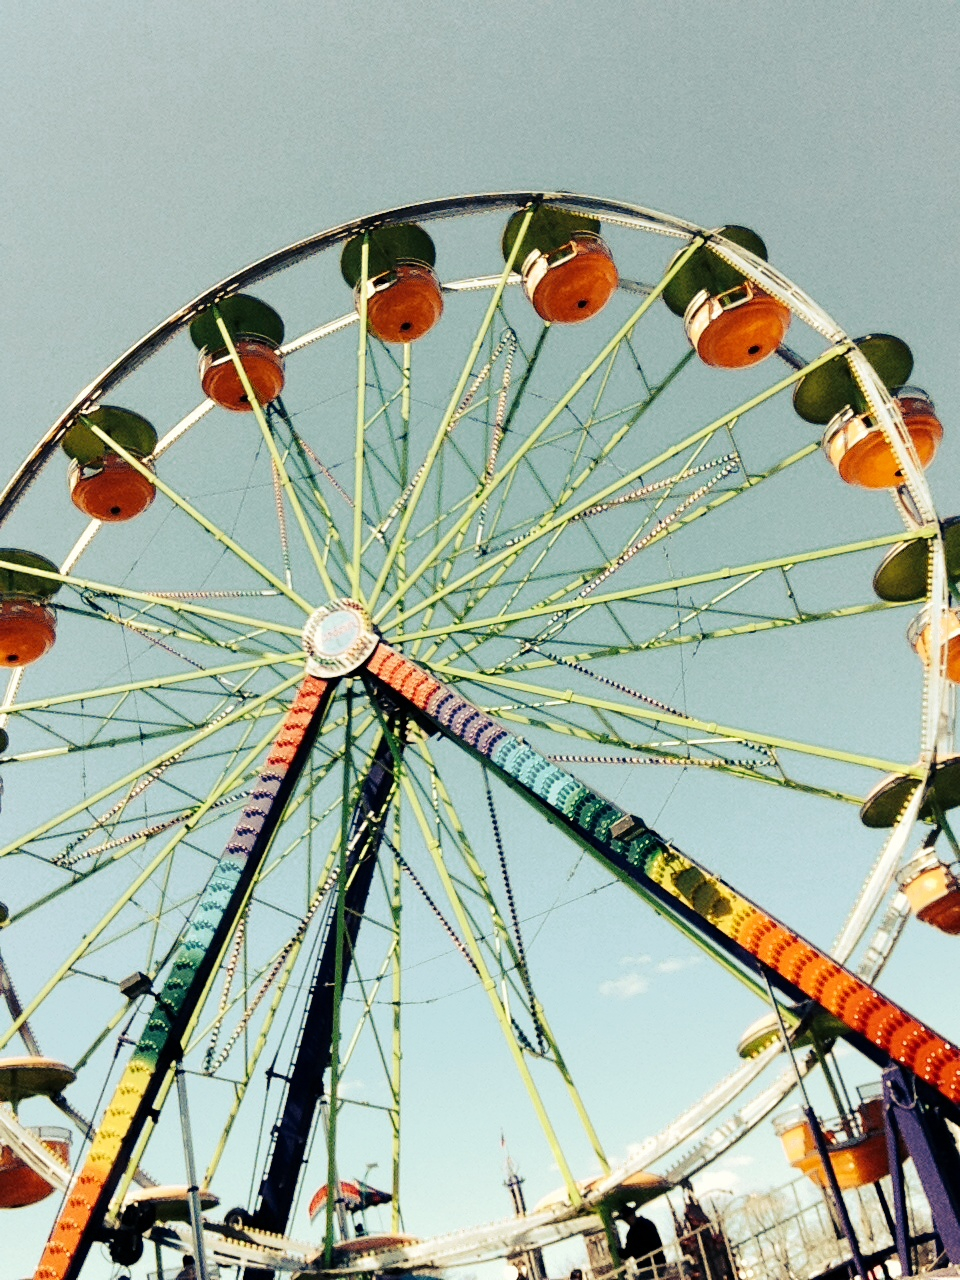 Ferris Wheel picture from iPod